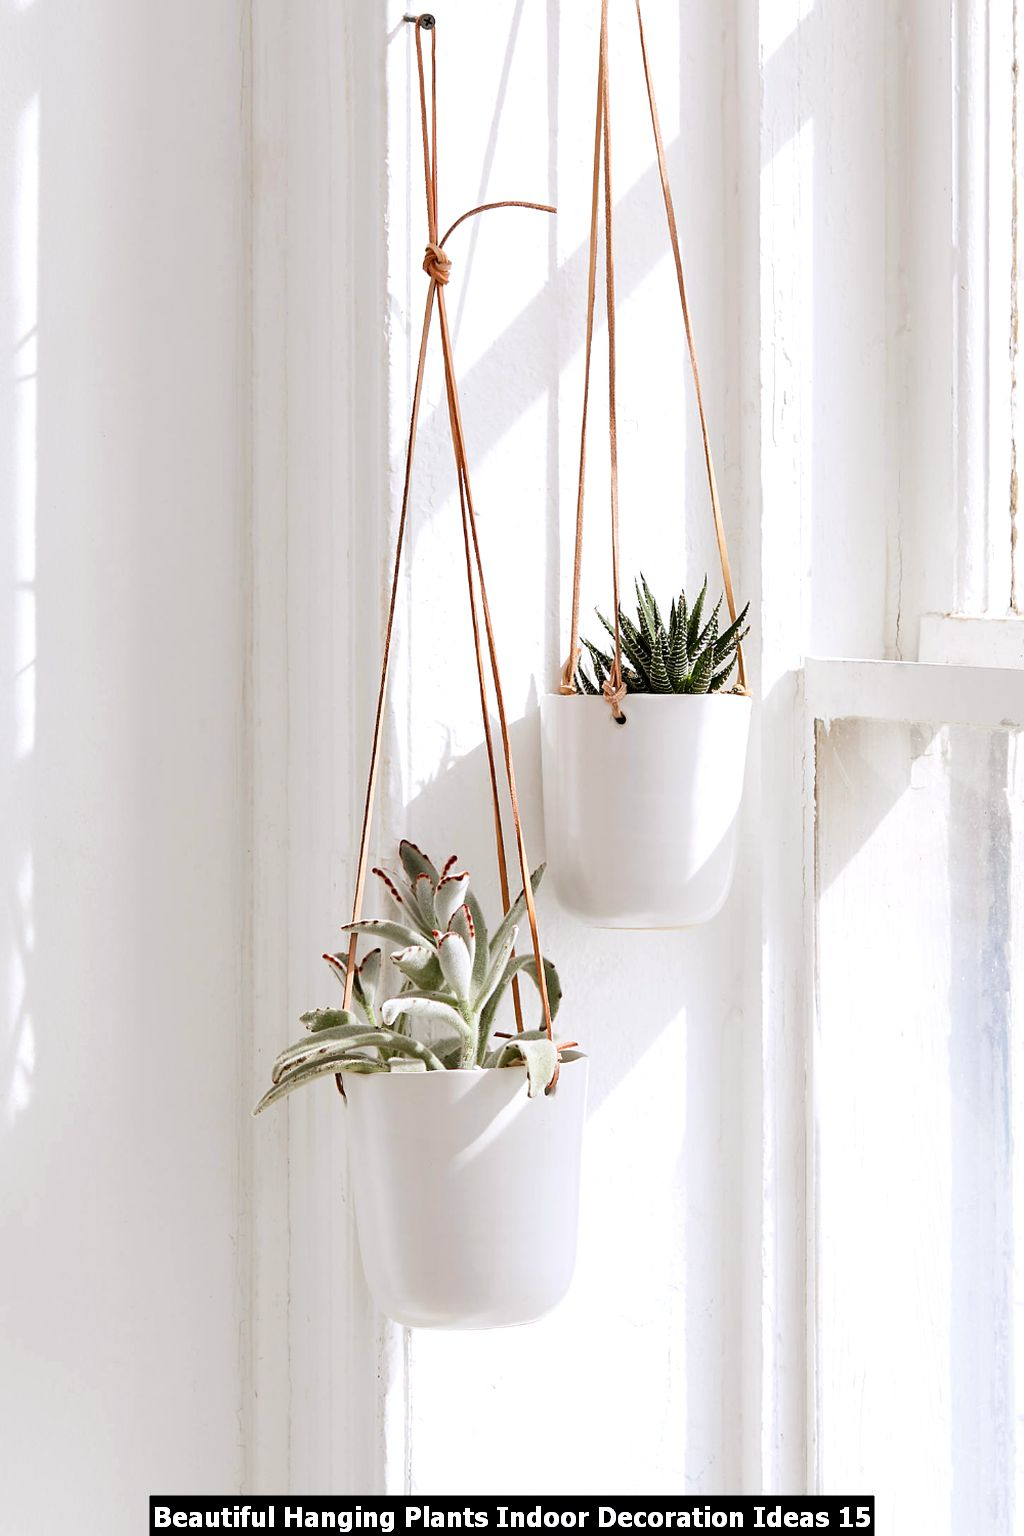 Beautiful Hanging Plants Indoor Decoration Ideas 15